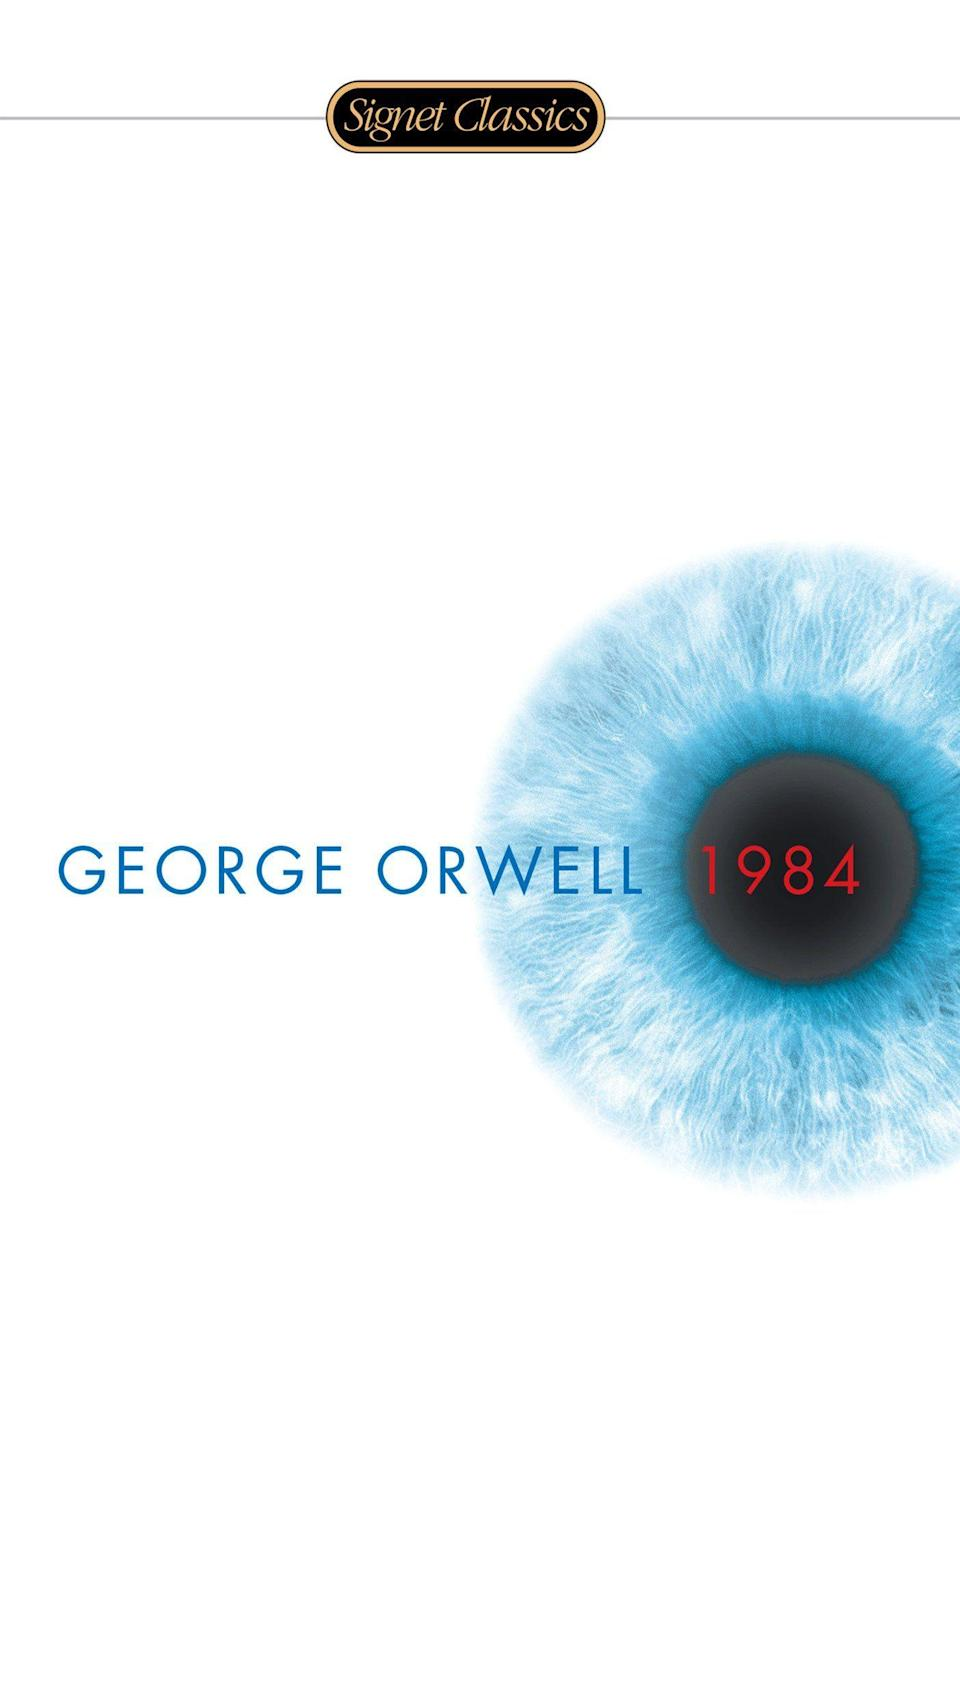 """<p><strong>George Orwell</strong></p><p>amazon.com</p><p><strong>$7.48</strong></p><p><a href=""""https://www.amazon.com/dp/0451524934?tag=syn-yahoo-20&ascsubtag=%5Bartid%7C10055.g.22749180%5Bsrc%7Cyahoo-us"""" rel=""""nofollow noopener"""" target=""""_blank"""" data-ylk=""""slk:Shop Now"""" class=""""link rapid-noclick-resp"""">Shop Now</a></p><p>George Orwell's tale of a dystopian world where the government is always watching isn't just eerily prescient. It also demonstrates how crucial free-thinking is to protect, especially to readers whose minds are most malleable. </p>"""